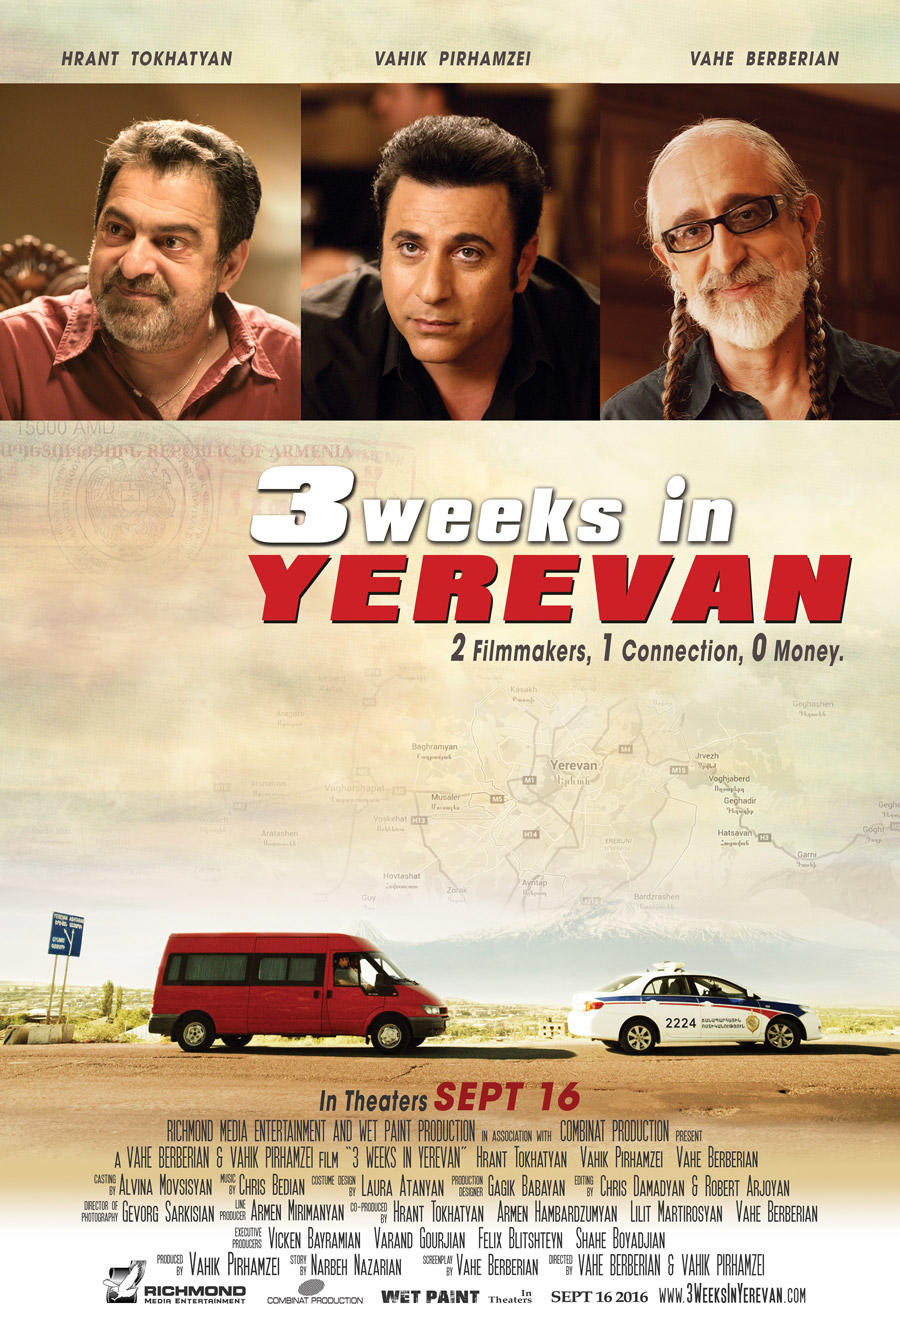 3 Weeks in Yerevan poster art